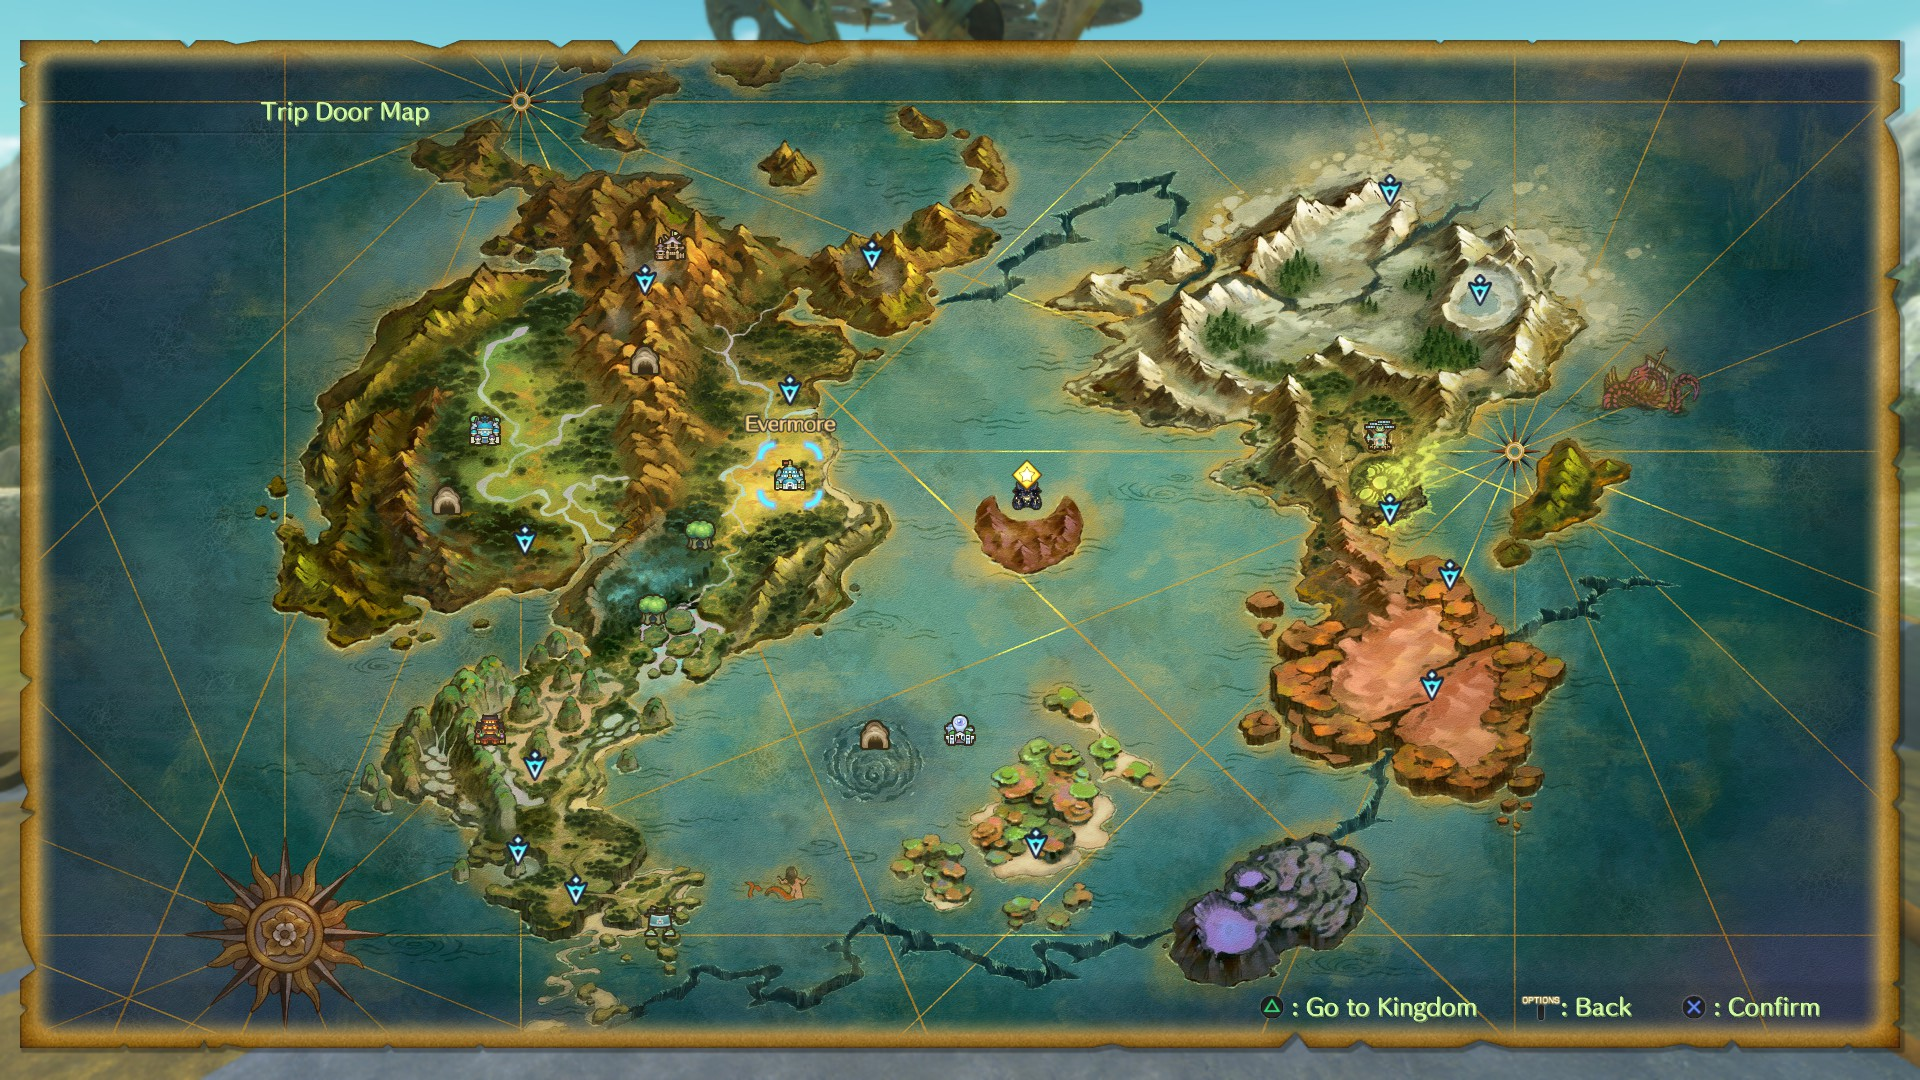 Ni no Kuni II Map Guide: All the locations, areas, caves, and more